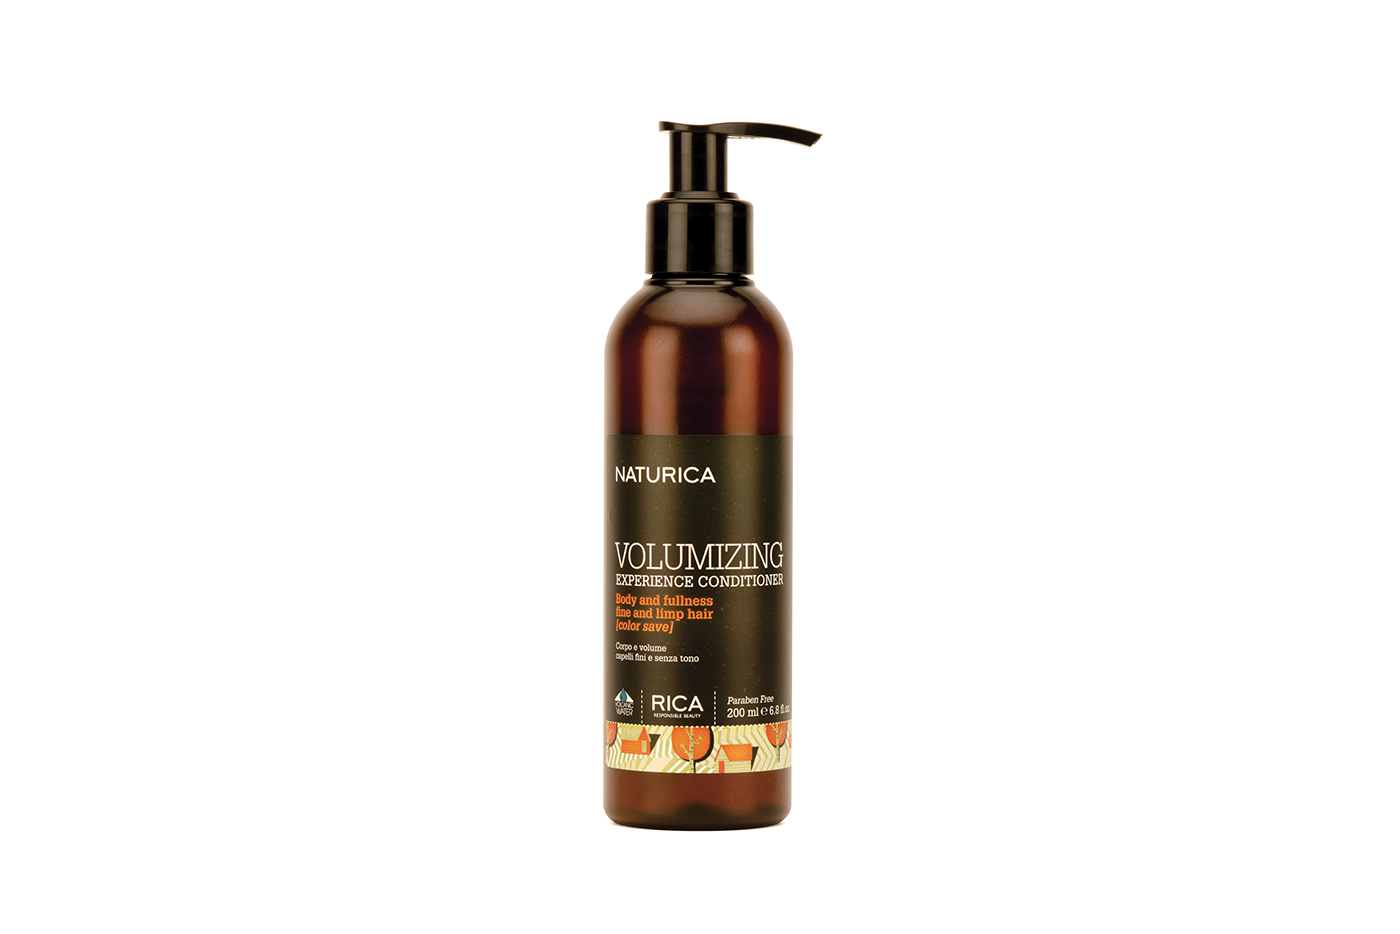 Naturica Volumizing Experience Conditioner